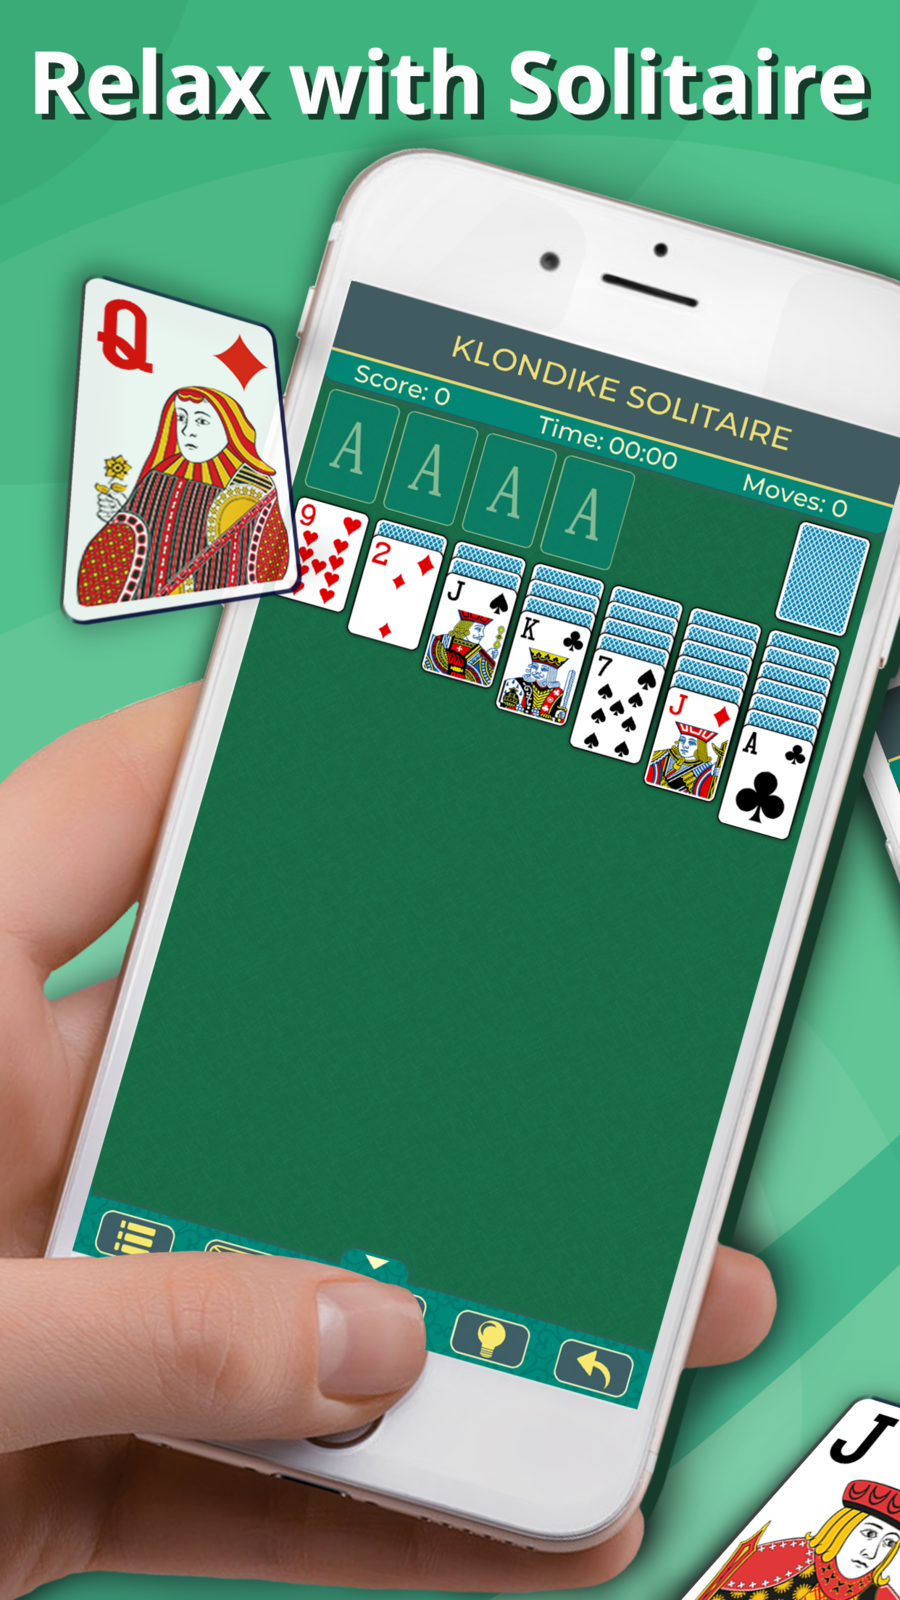 ‎Solitaire Klondike Classic. on the App Store Solitaire